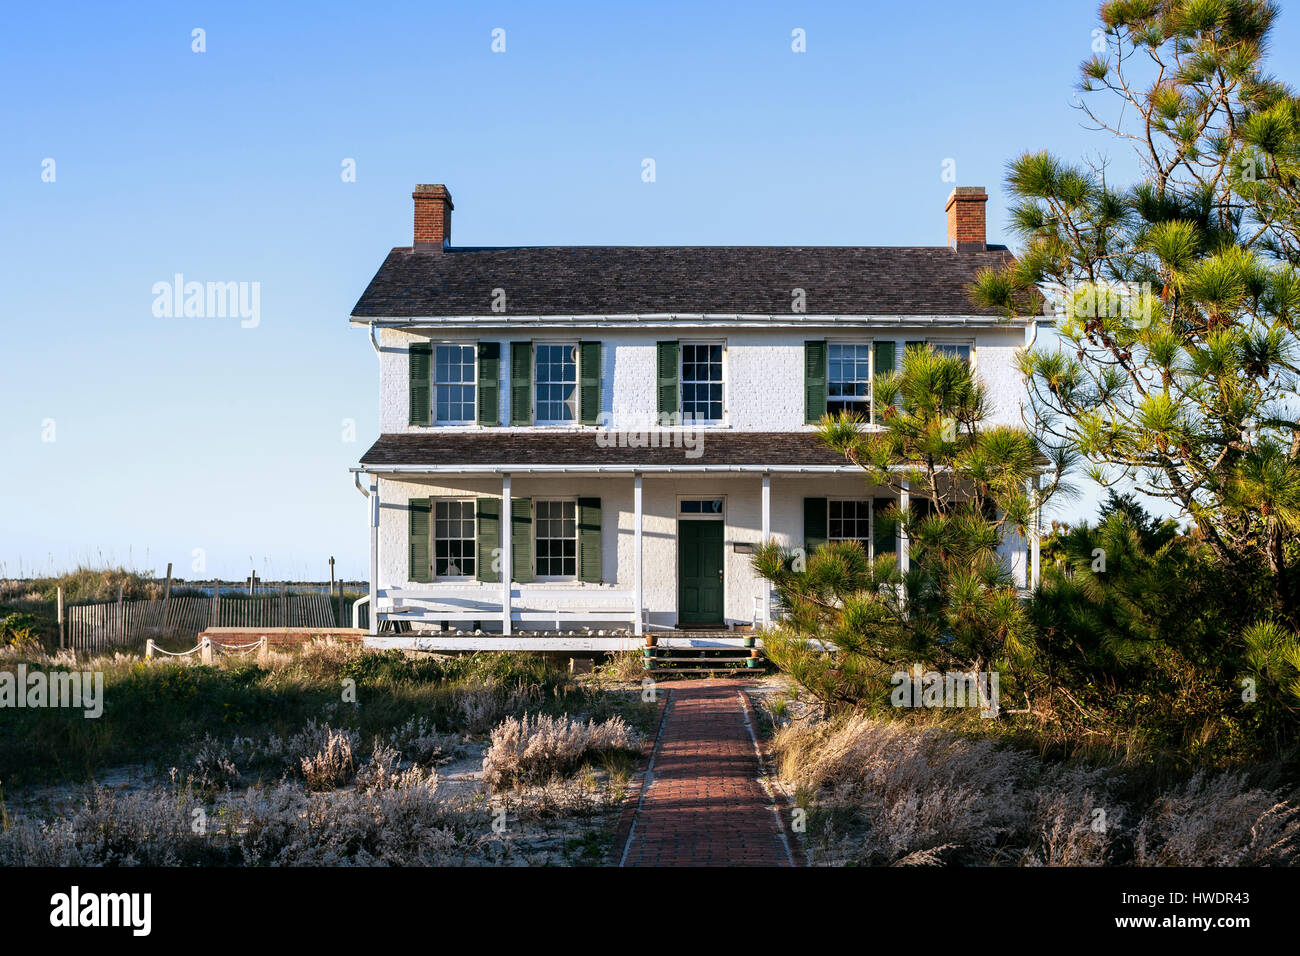 NC00866-00...NORTH CAROLINA - Lighthouse keepers house at Cape Lookout National Seashore on the South Core Banks. - Stock Image